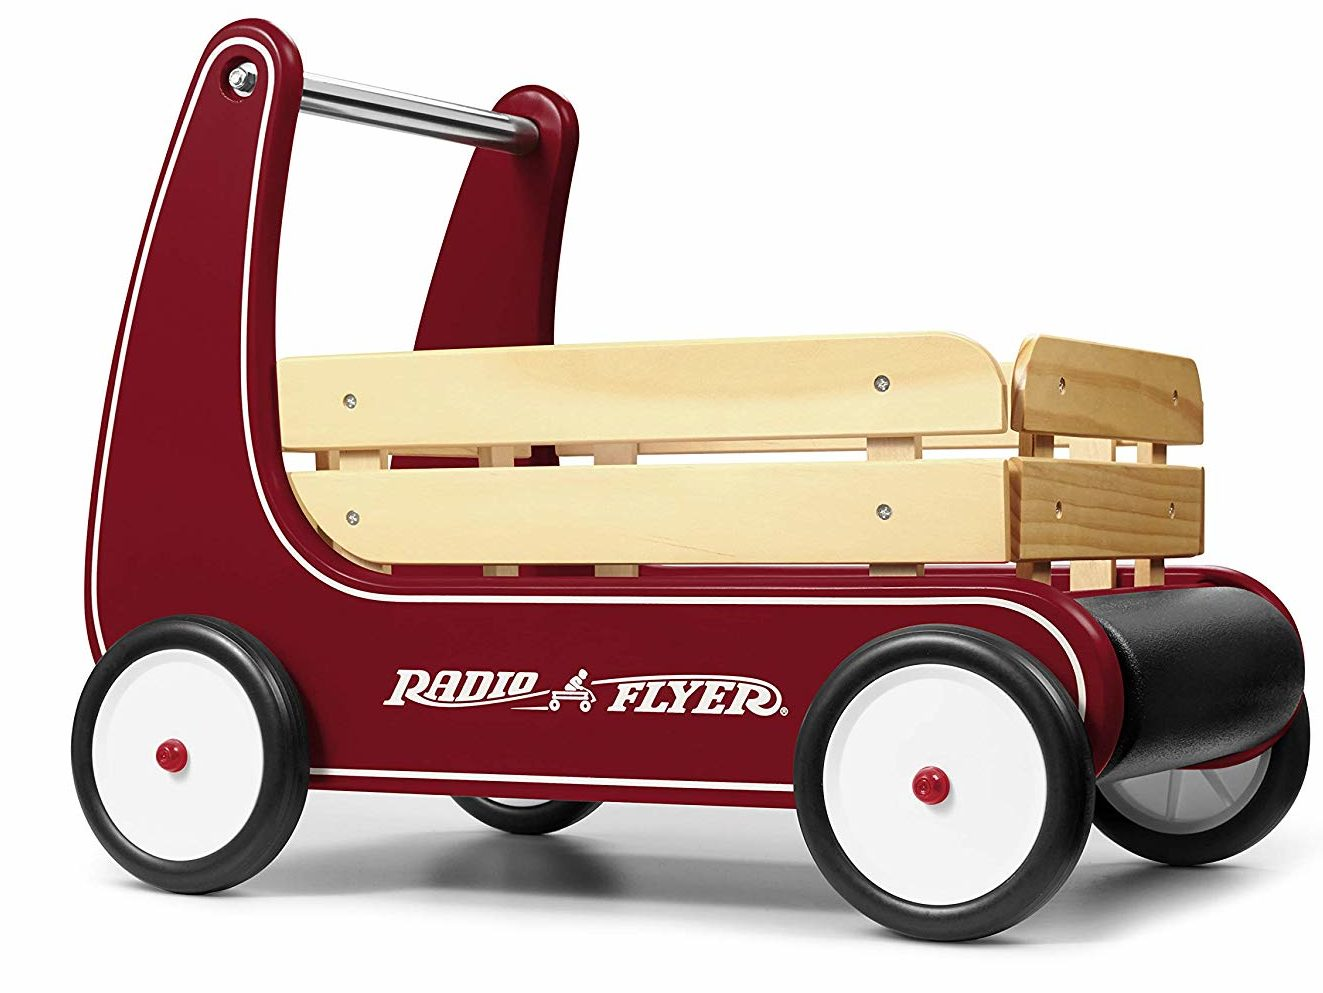 """Best Toys for a Year Old Radio Flyer Classic Walker Wagon """"width ="""" 400 """"height ="""" 300 """"srcset ="""" https://www.top5.com/wp-content/ uploads / 2013 /06/best-toys-for-a-one-old-radio-flyer-classic-walker-wagon-e1557253374253.jpg 1323w, https://www.top5.com/wp-content/ uploads / 2013/06 / best-toys-for-a-one-year-old-radio-flyer-classic-walker-wagon-e1557253374253-300x225.jpg 300w, https://www.top5.com/wp-content/ uploads / 2013/06 /best-toys-for-a-one-old-radio-flyer-classic-walker-wagon-e1557253374253-768x576.jpg 768w, https://www.top5.com/wp-content/uploads/ 2013/06 / best-toys-for-a-one-year-old-radio-flyer-classic-walker-wagon-e1557253374253-1024x769.jpg 1024w """"size ="""" (max width: 400px) 100vw 400px"""